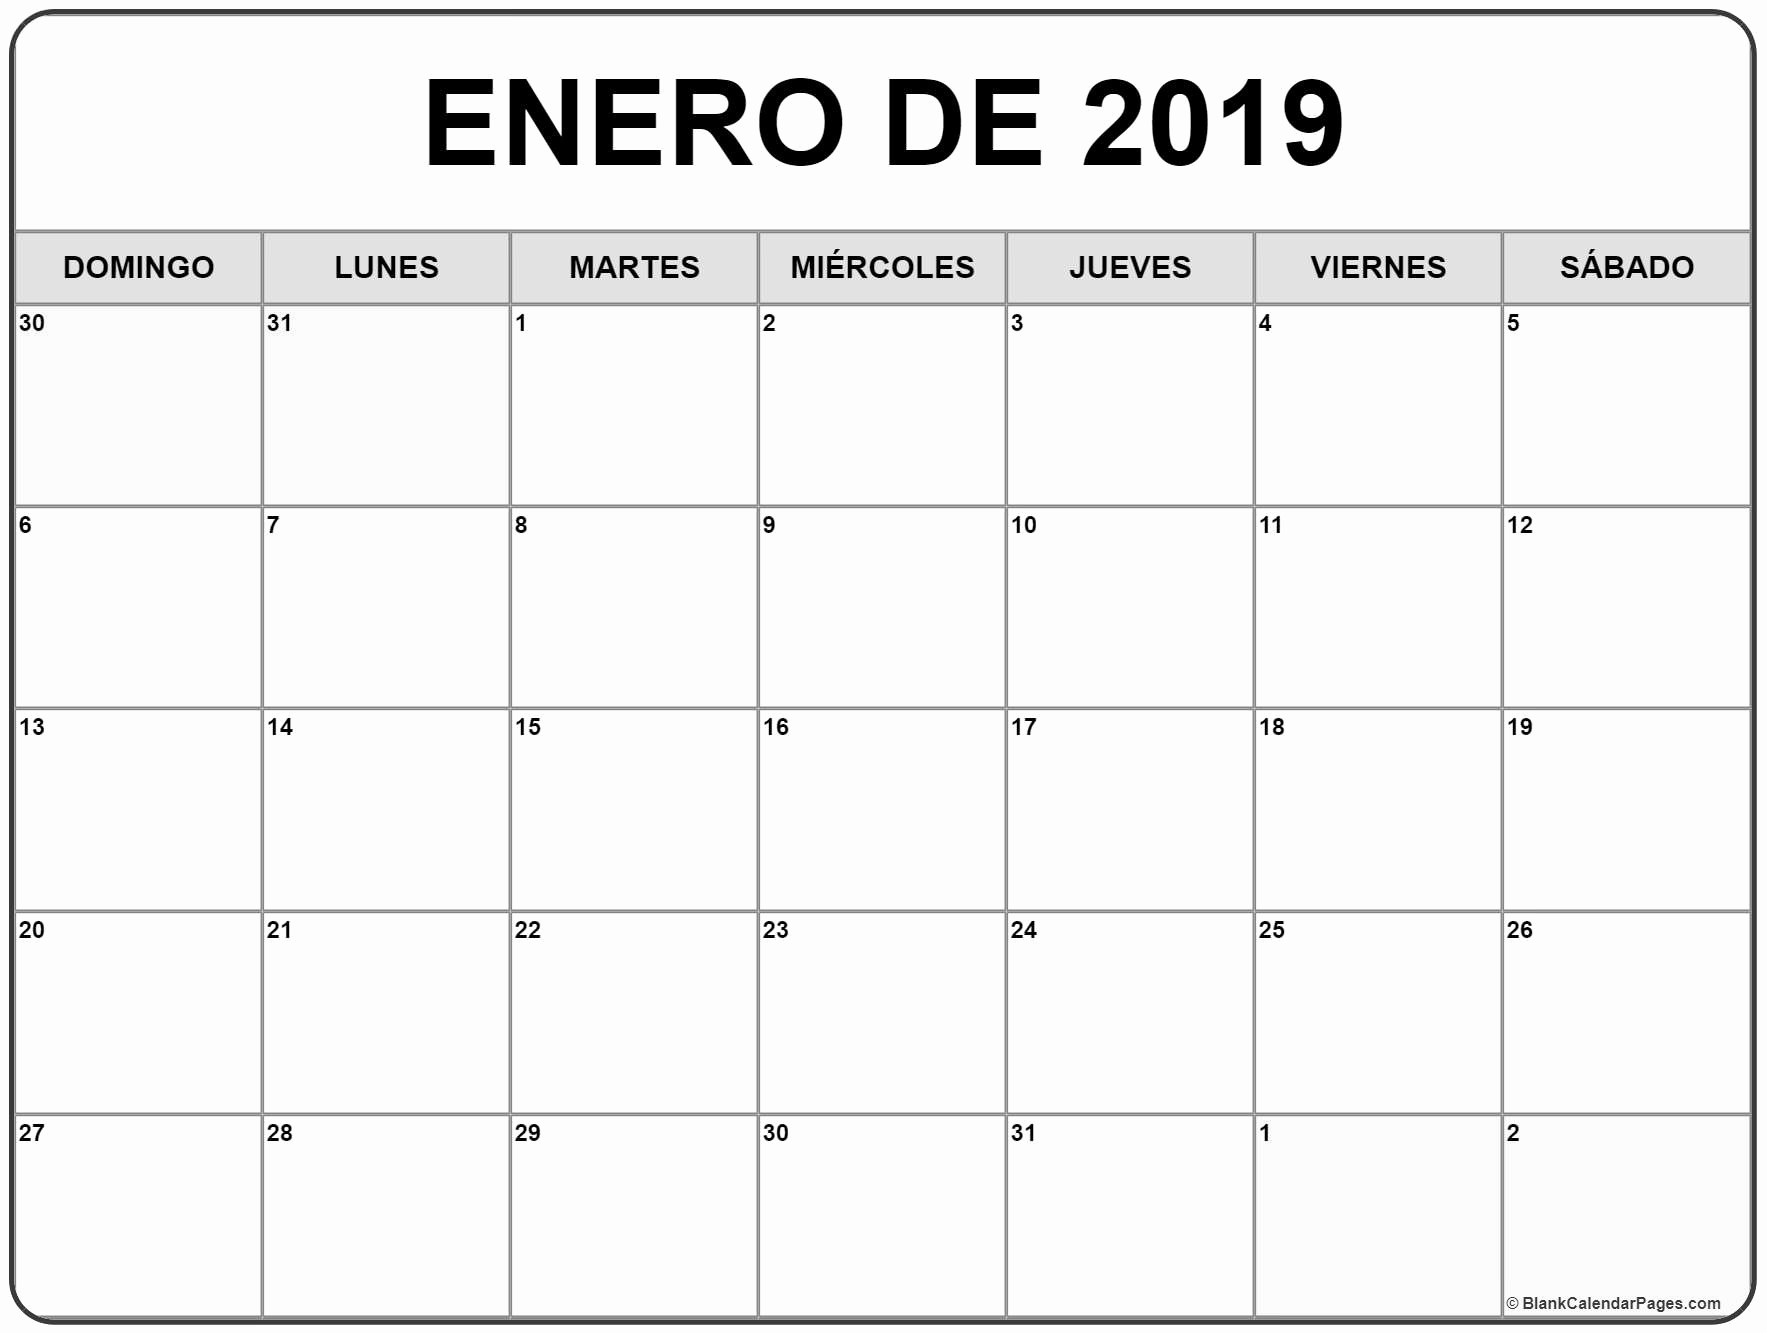 Calendario Legal Colombia 2019 Actual Calendario Dr 2019 Calendario 2019 Of Calendario Legal Colombia 2019 Más Populares De Lujo 51 Ejemplos Festivos 2019